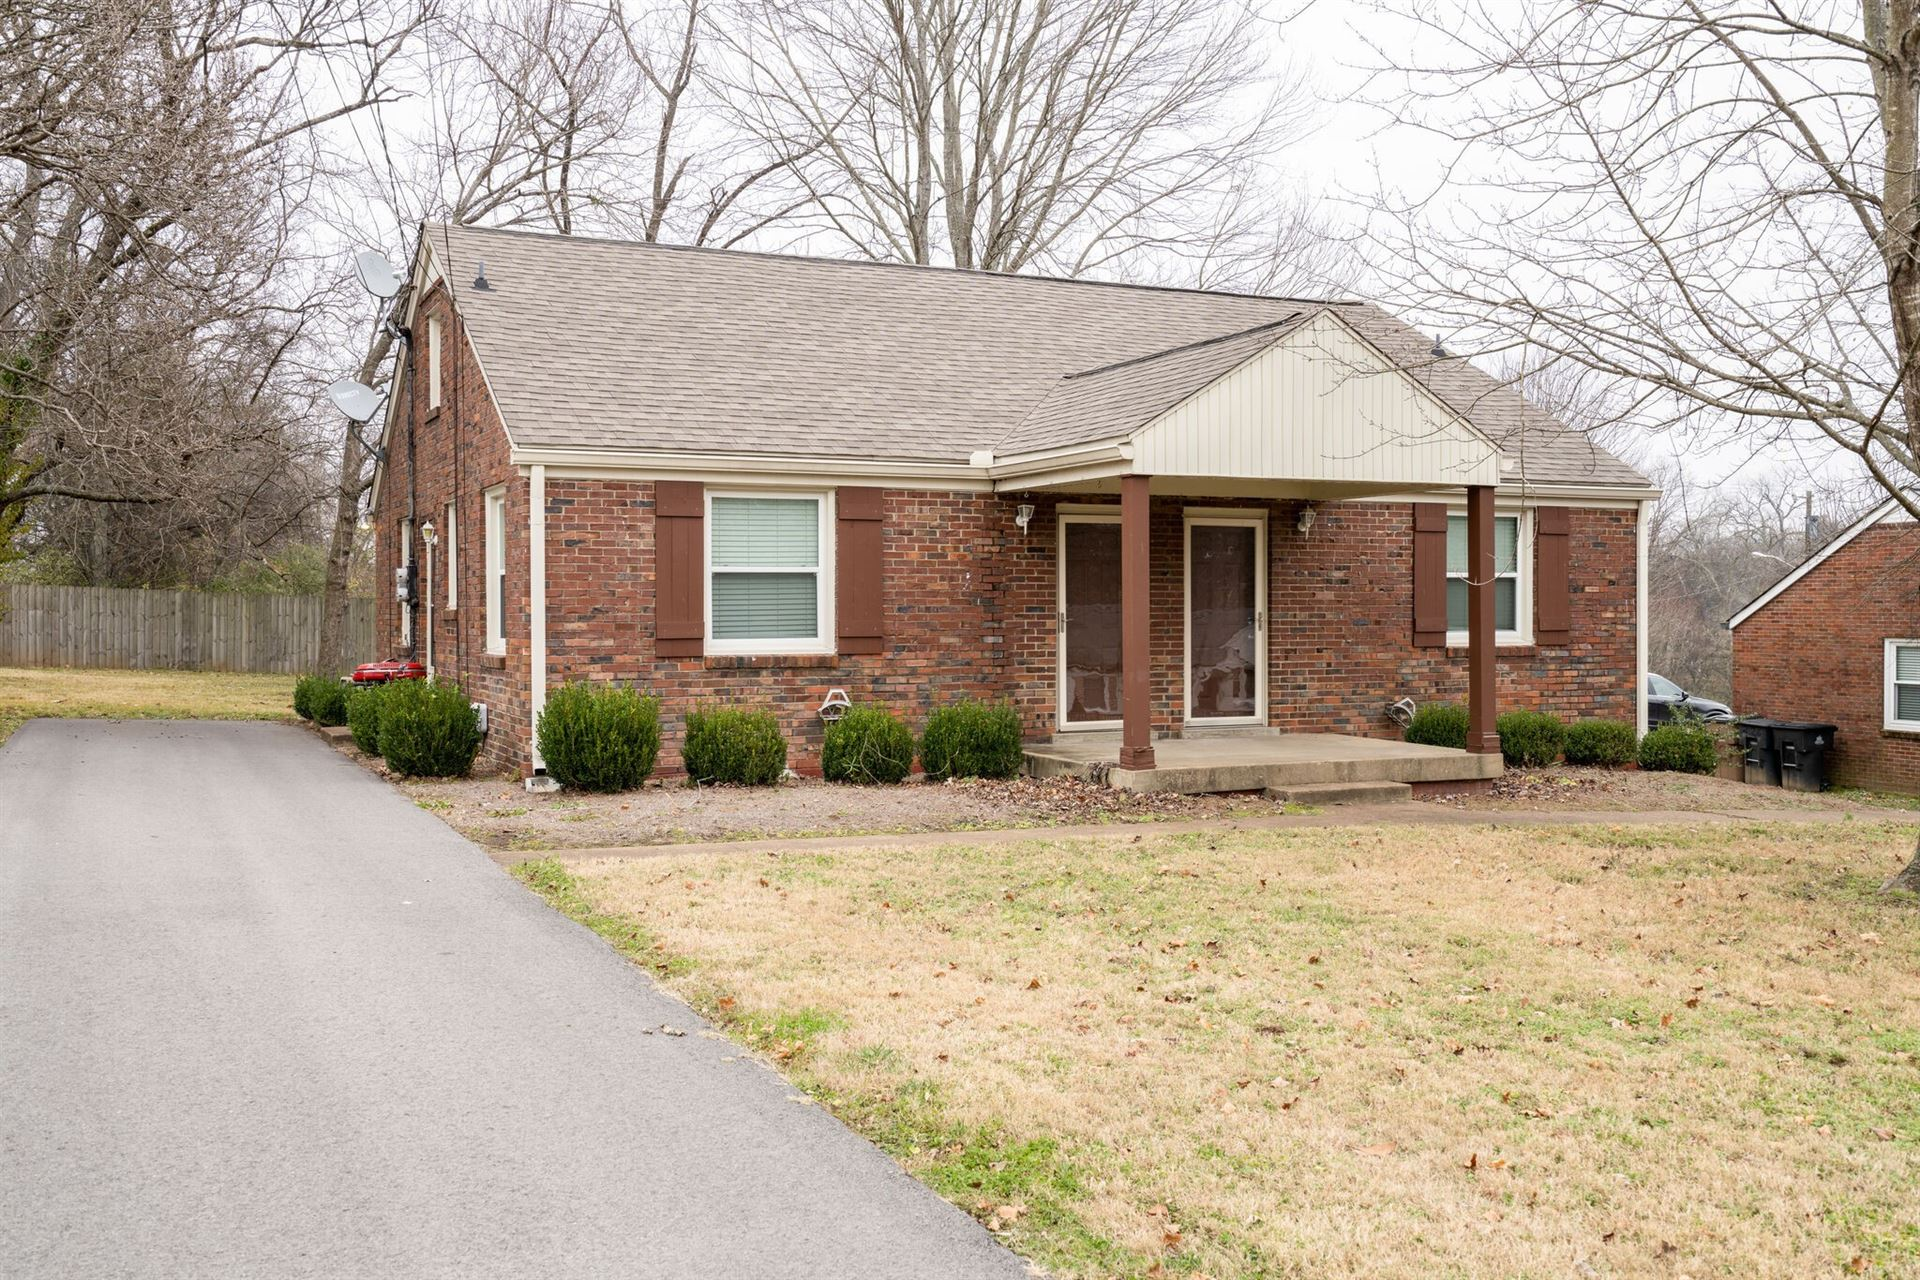 Photo of 2119 Geneiva Dr, Nashville, TN 37216 (MLS # 2222378)